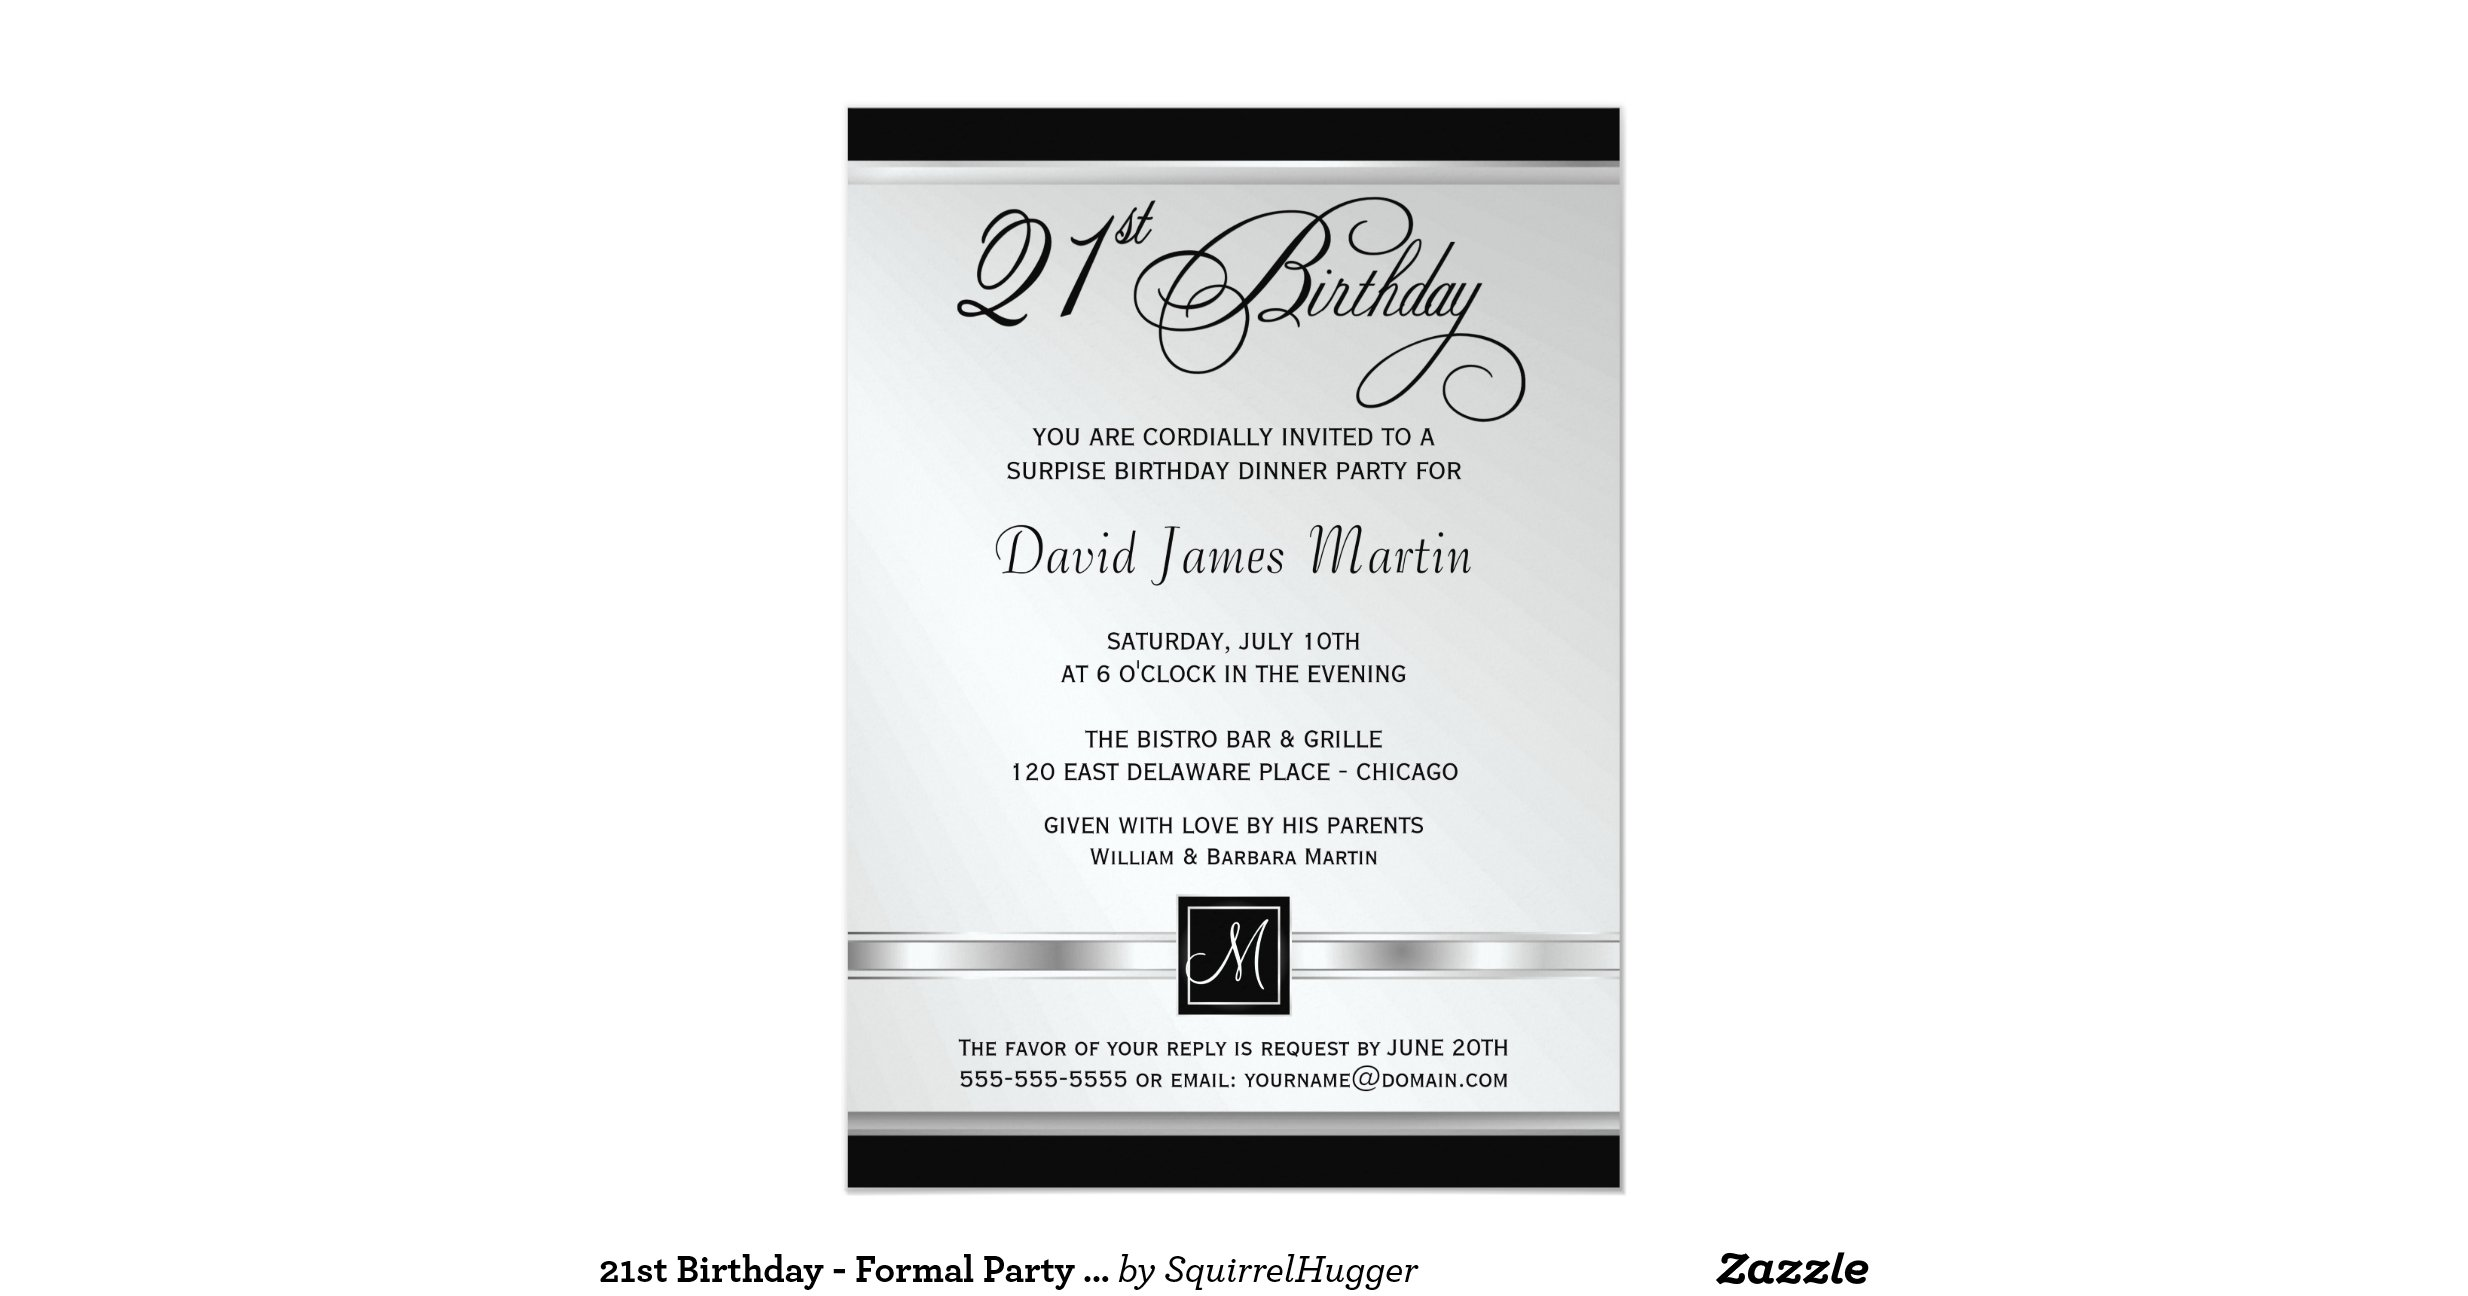 50th Birthday Party Invitations Formal Black Gold Zazzle Black And ...